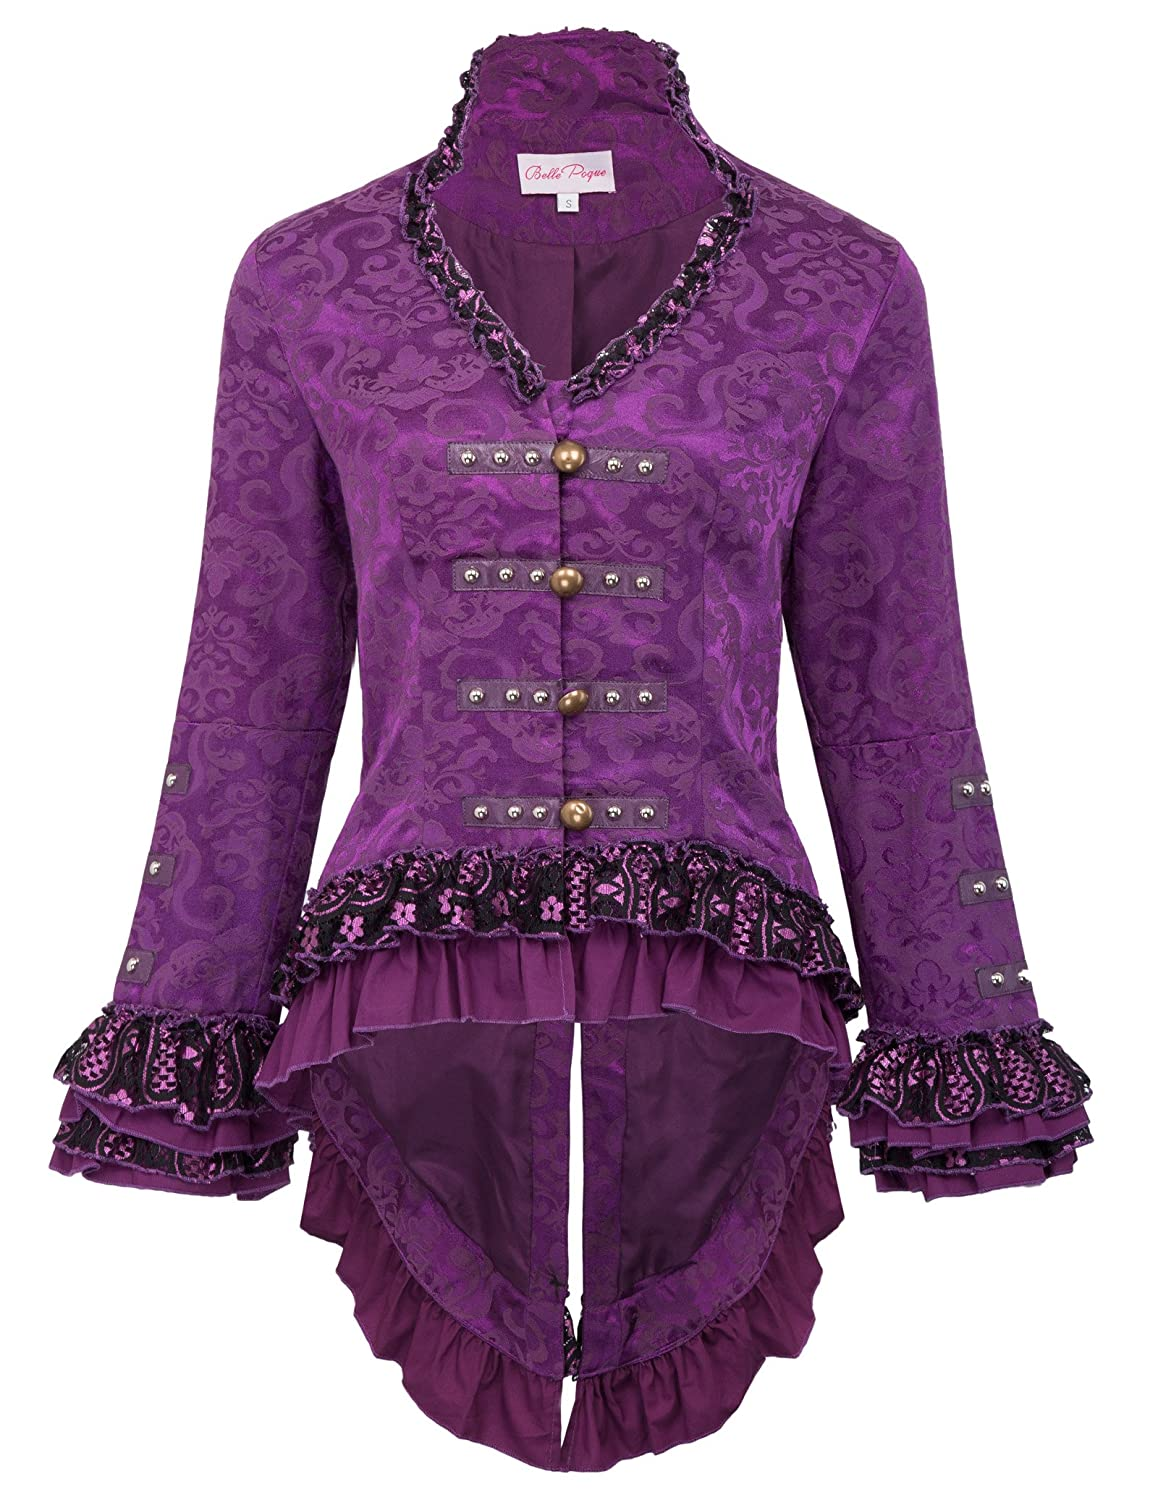 Women's Fancy Purple Pirate Captain Gothic Tails Back Lacing Coat - DeluxeAdultCostumes.com